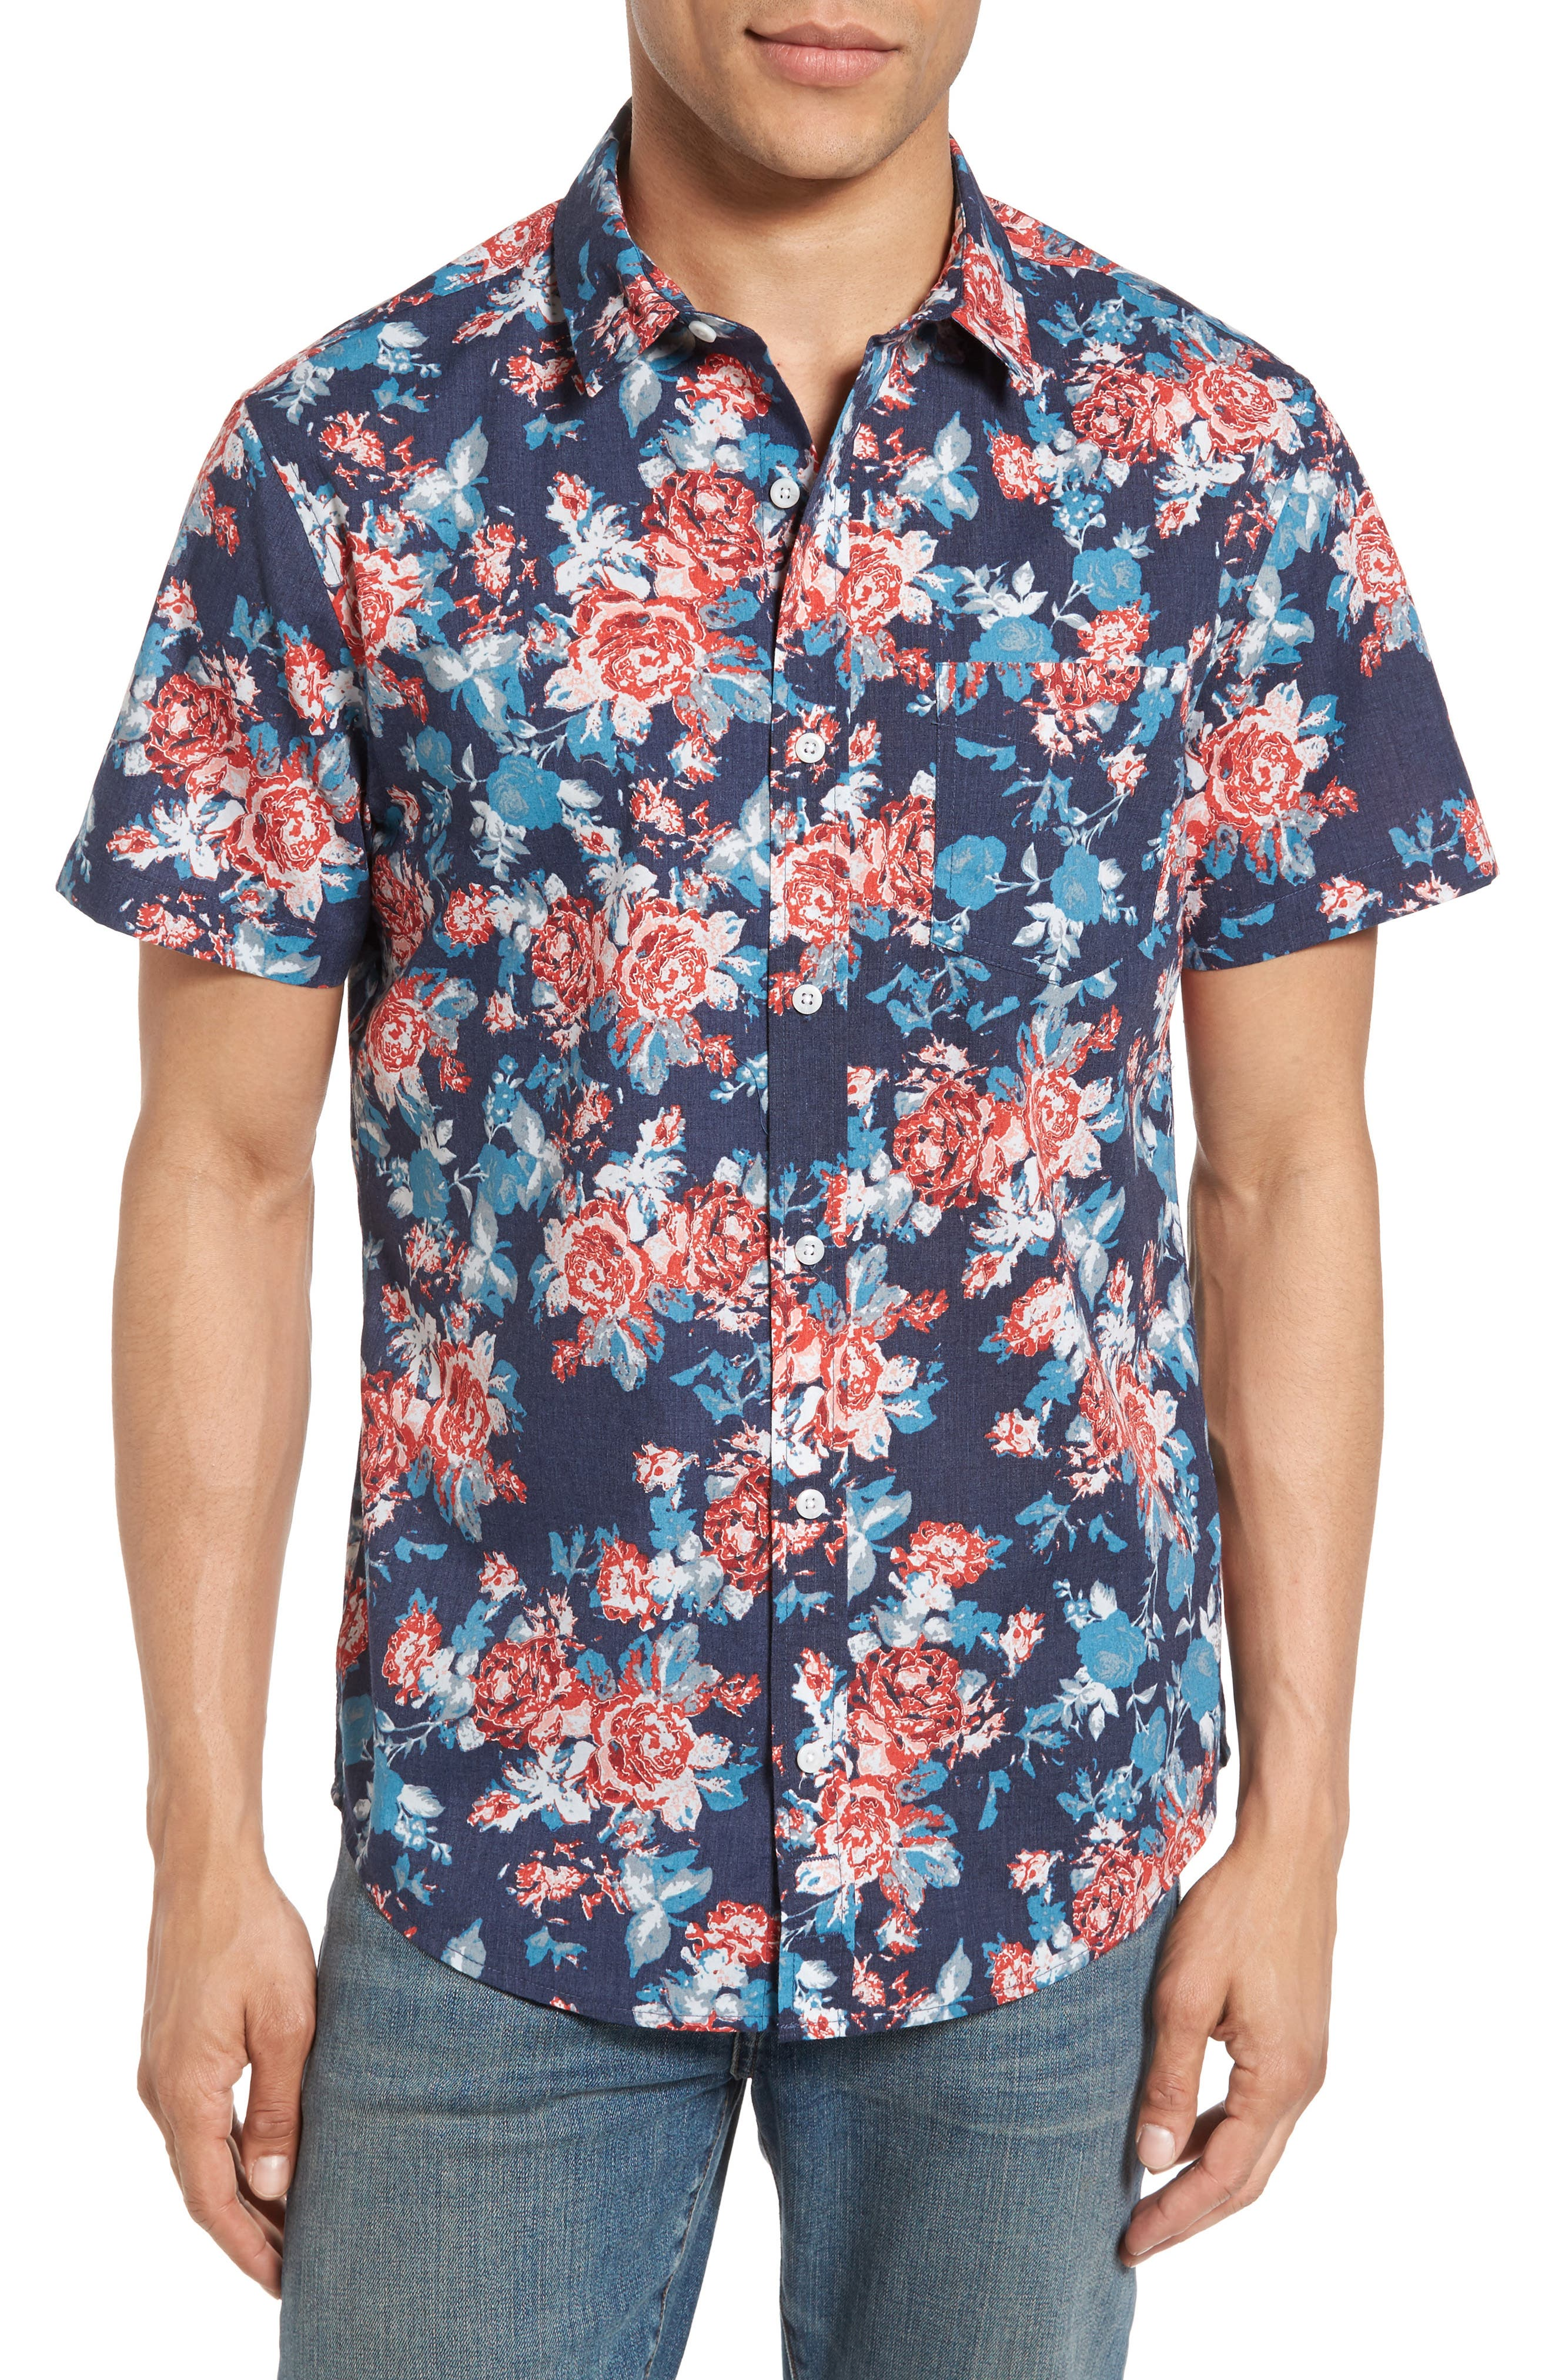 Alternate Image 1 Selected - 1901 Wallpaper Floral Print Shirt